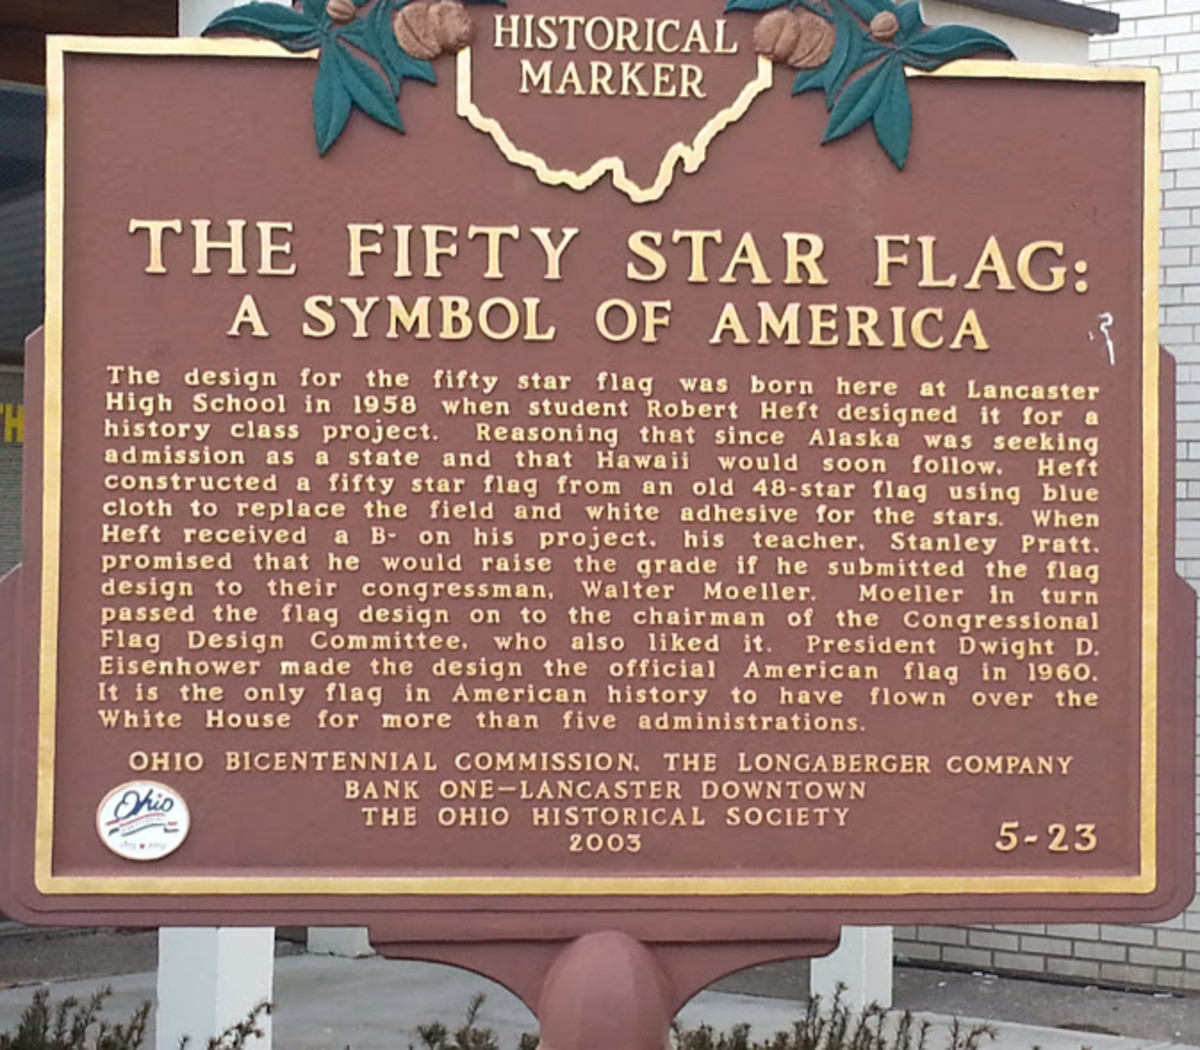 Robert Heft, a high school student, designed our 50 star flag.  Imagine, he only received a B- on the assignment.